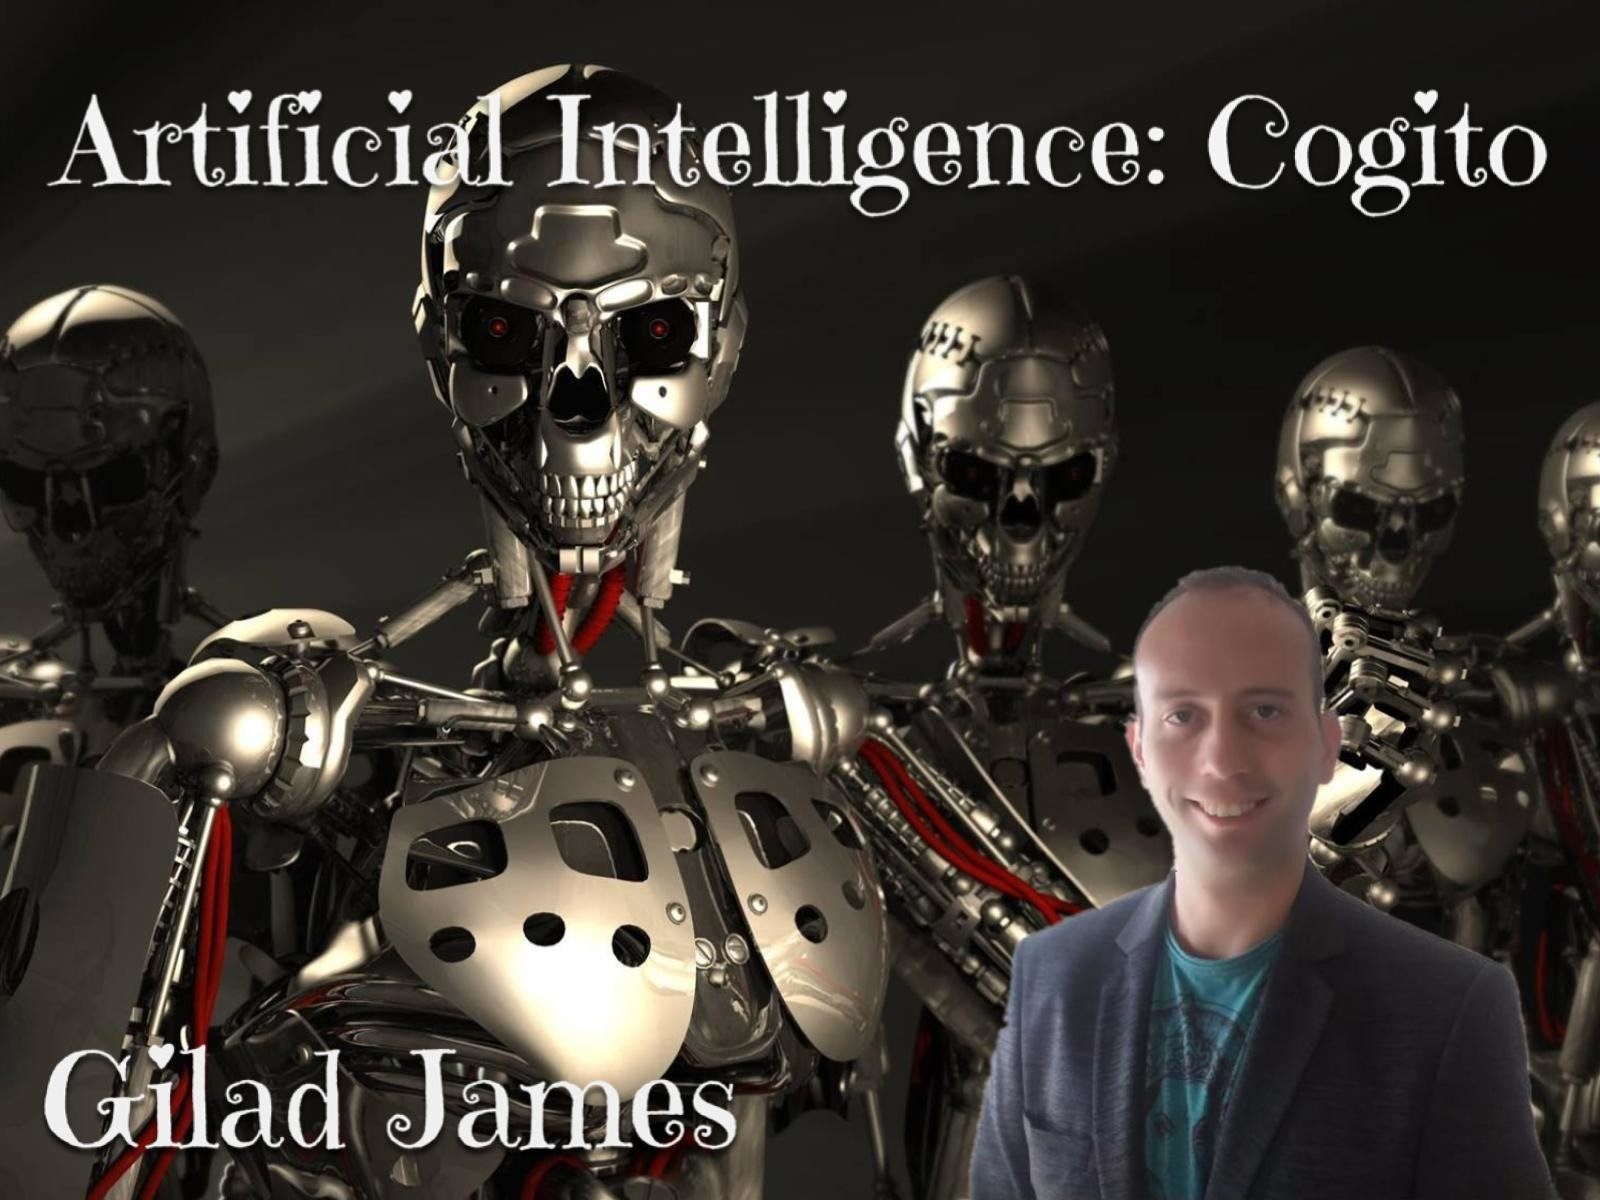 Artificial Intelligence: Cogito on Amazon Prime Video UK